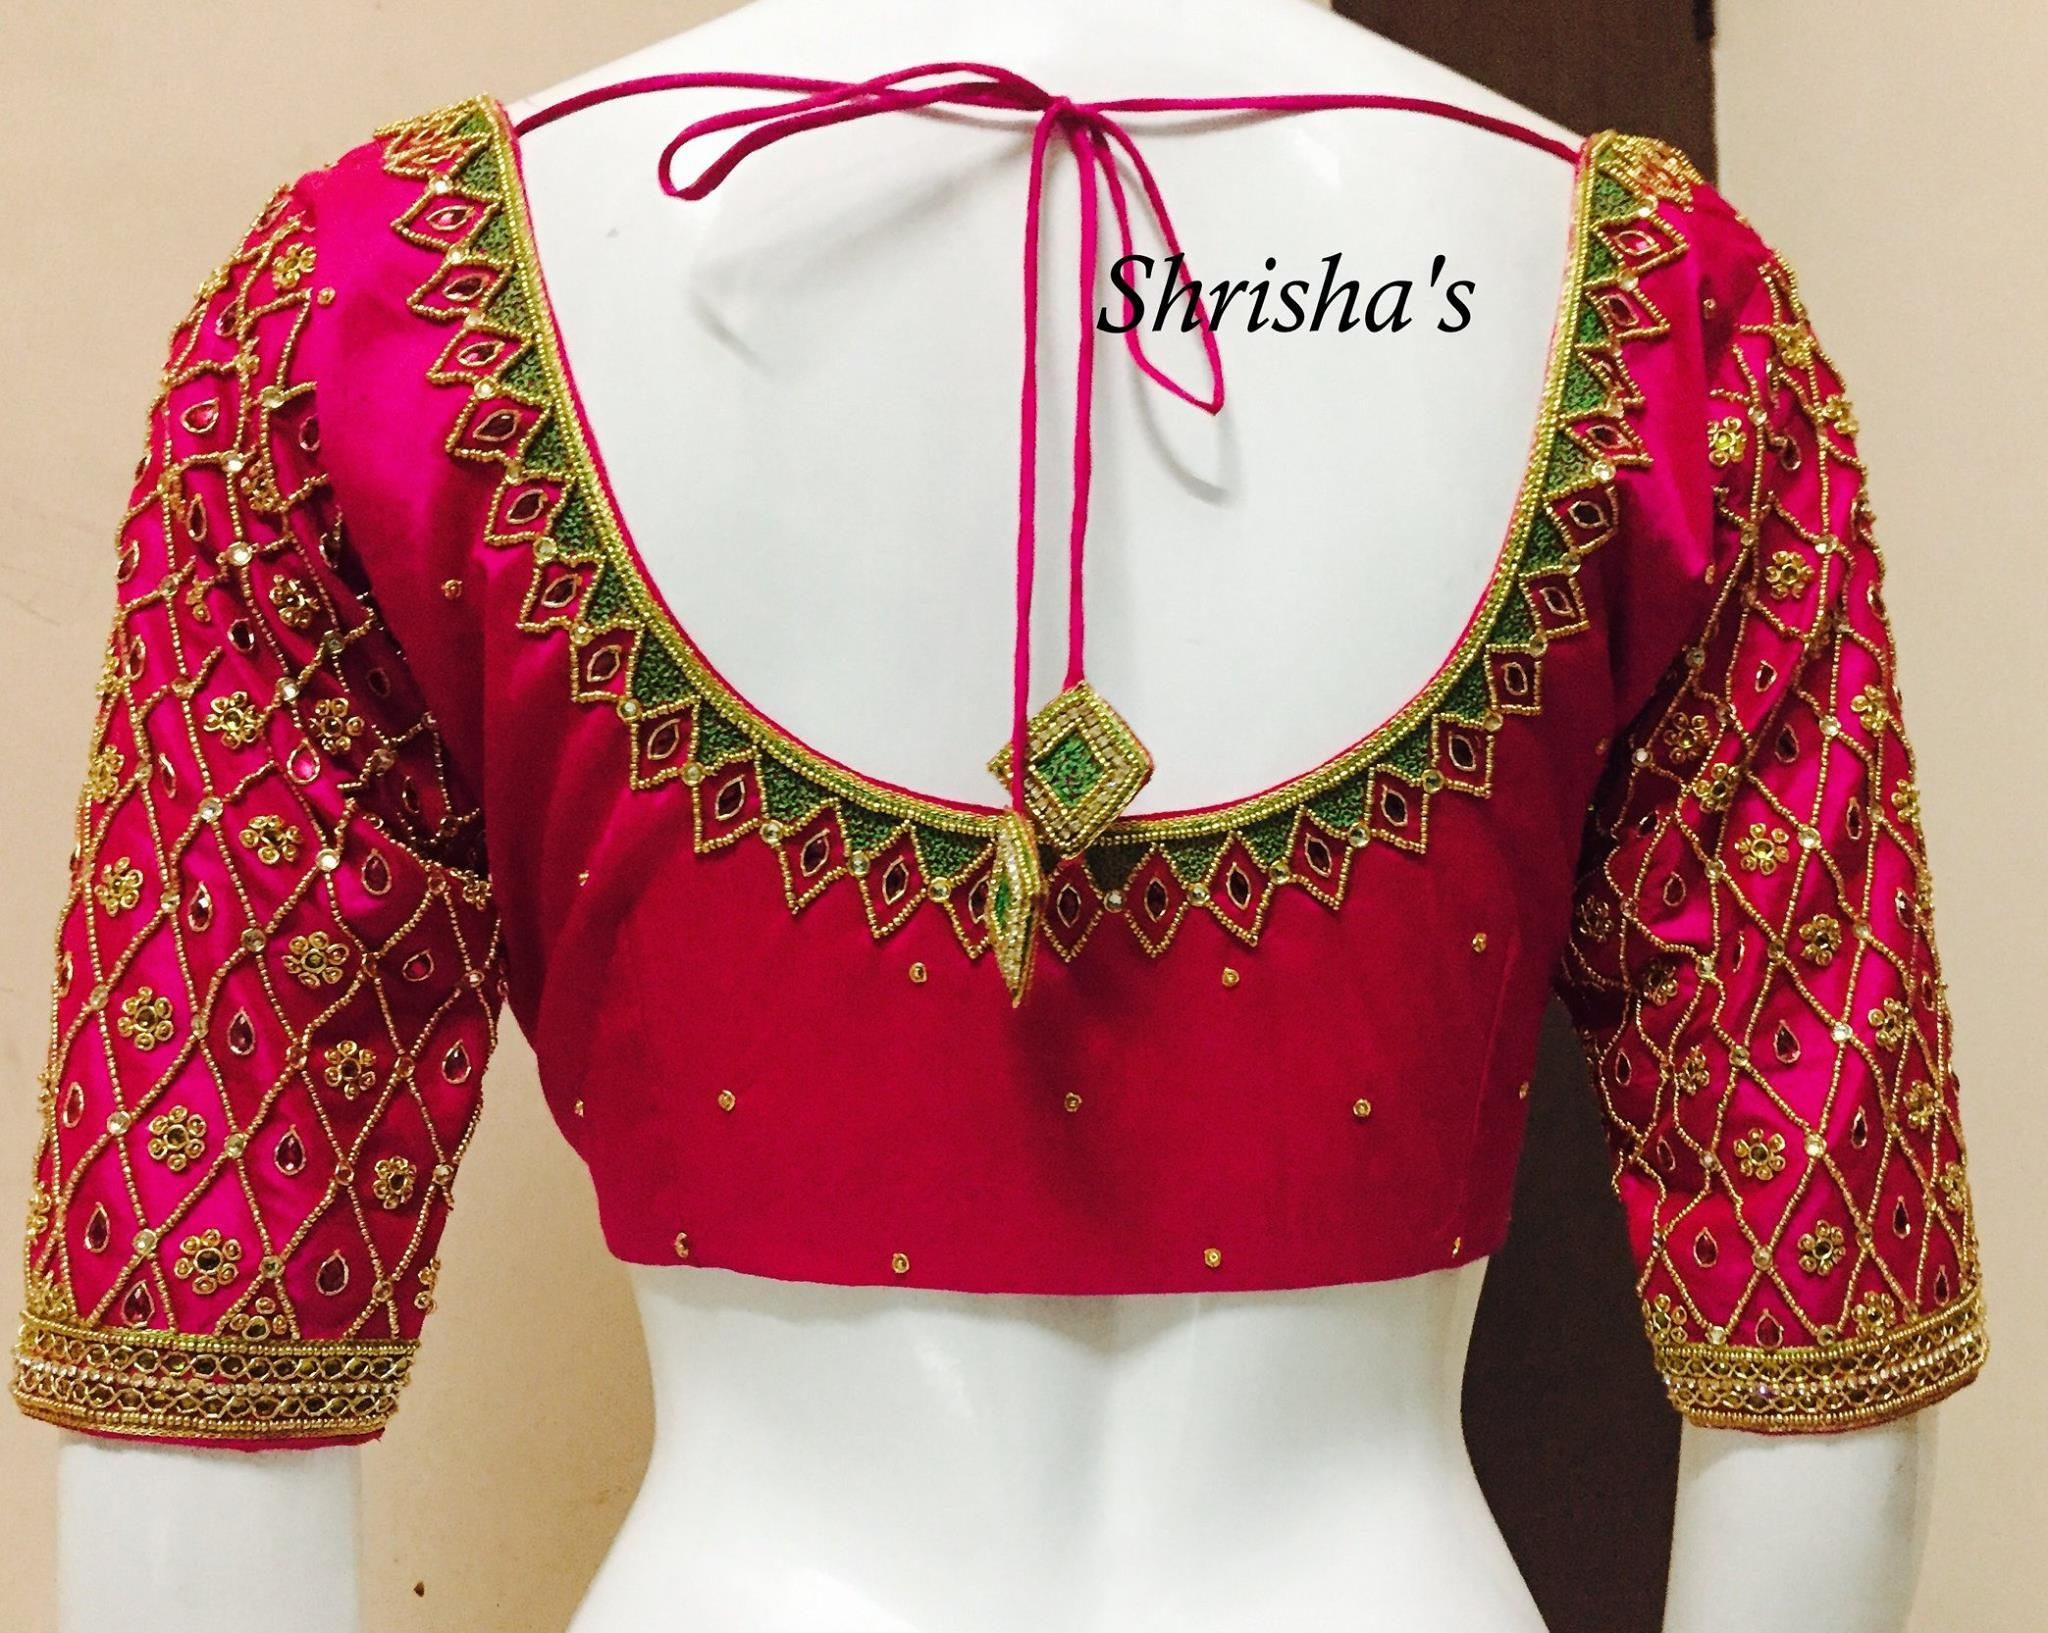 Blouse designs saree blouse back designs blouses neck designs 30 jpg - Embroidery Blouse Back Design From Shrishas 26 February 2017 Blouse Necksaree